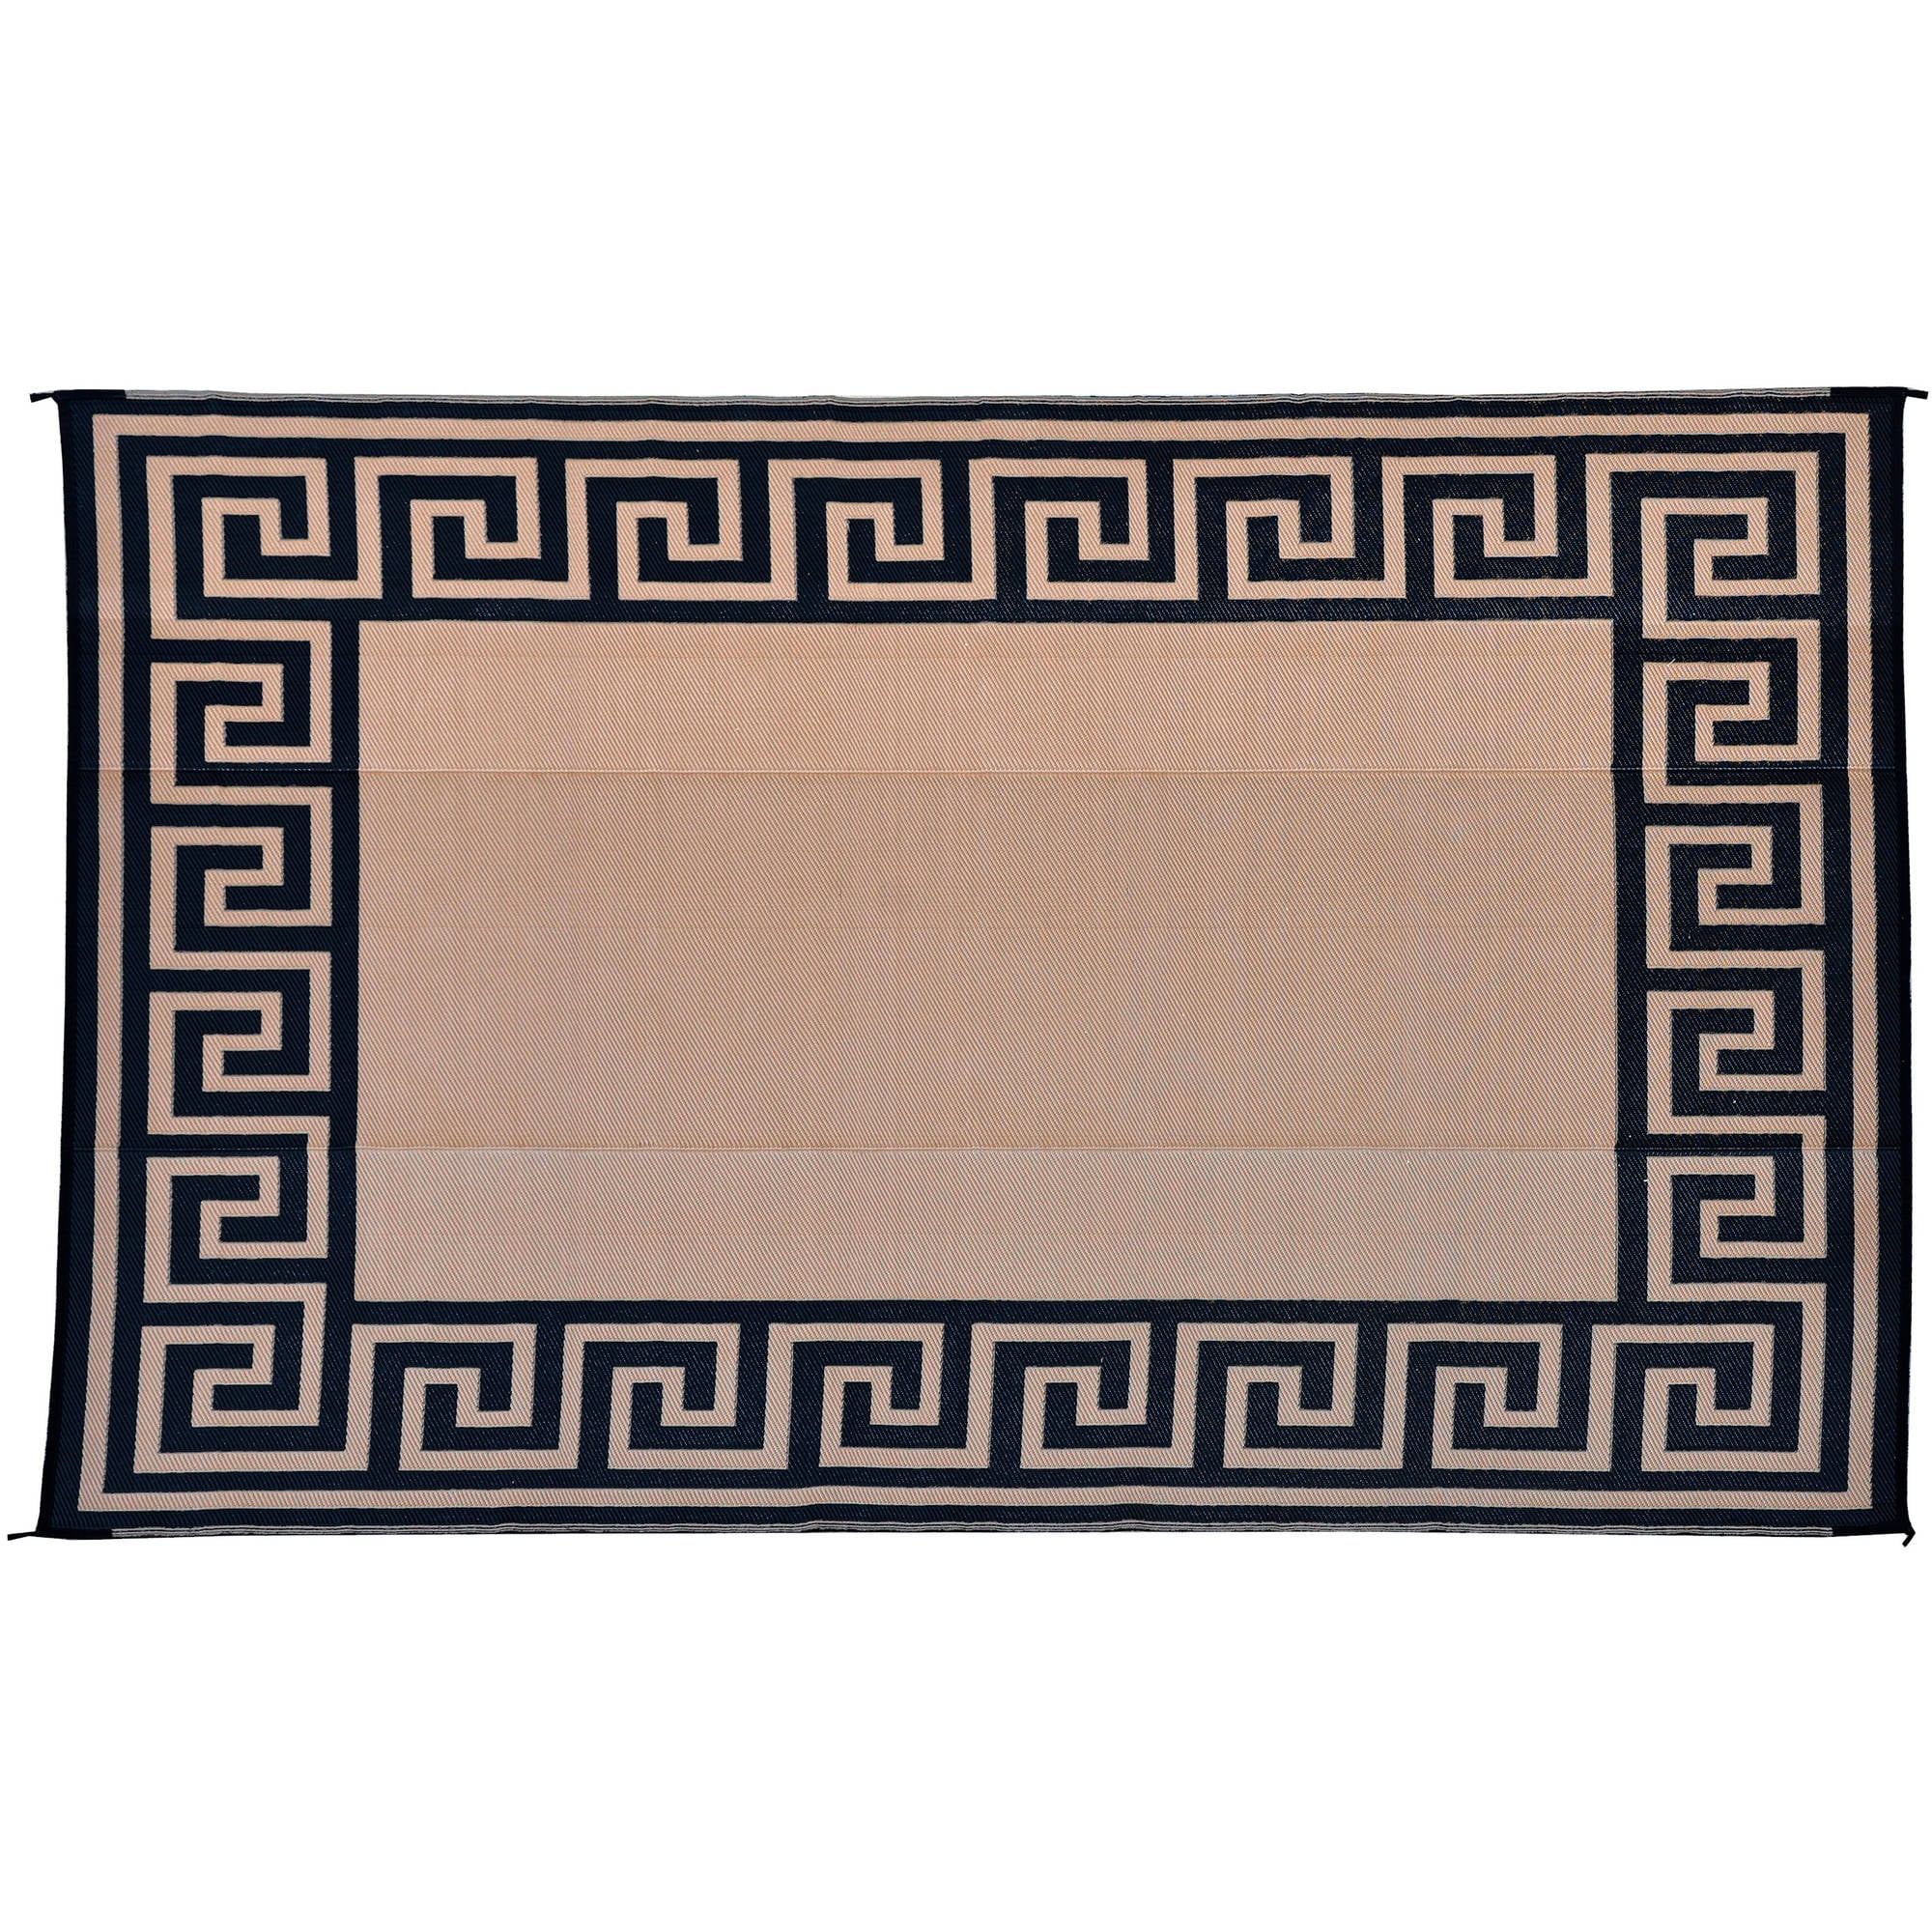 tables outdoor mats wells patio designs for as options nifty bistrodre outdoorrugs camping coffee in image lowes elegant rugs porch